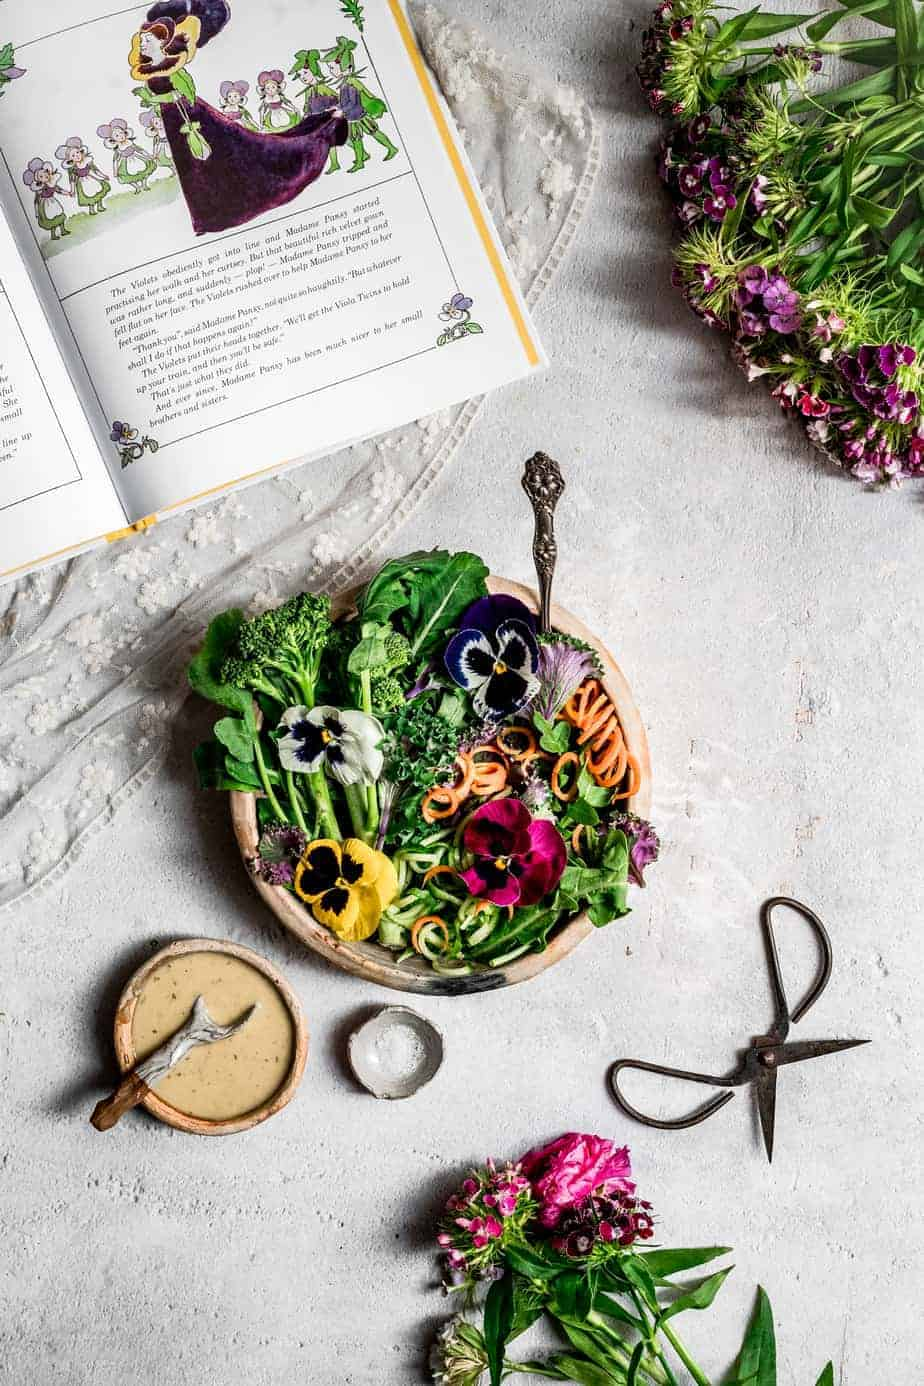 an overhead image of a rustic clay bowl with vibrant greens, spiralized caters and colorful edible pansies in white, yellow, pink and purple - with a homemade salad dressing